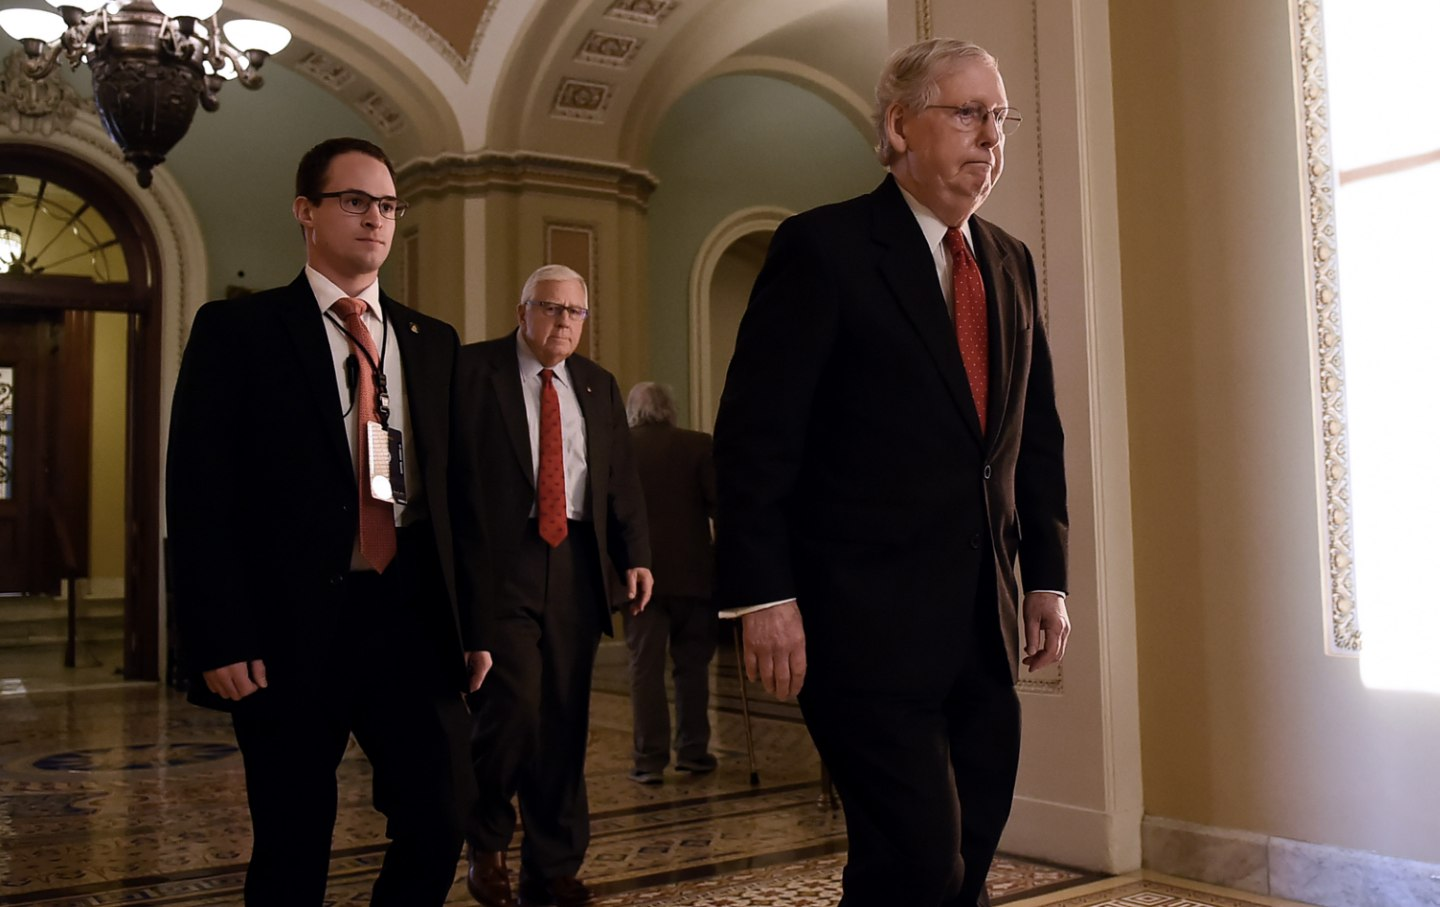 Mitch McConnell leaves the Senate chamber on recess from impeachment trial.